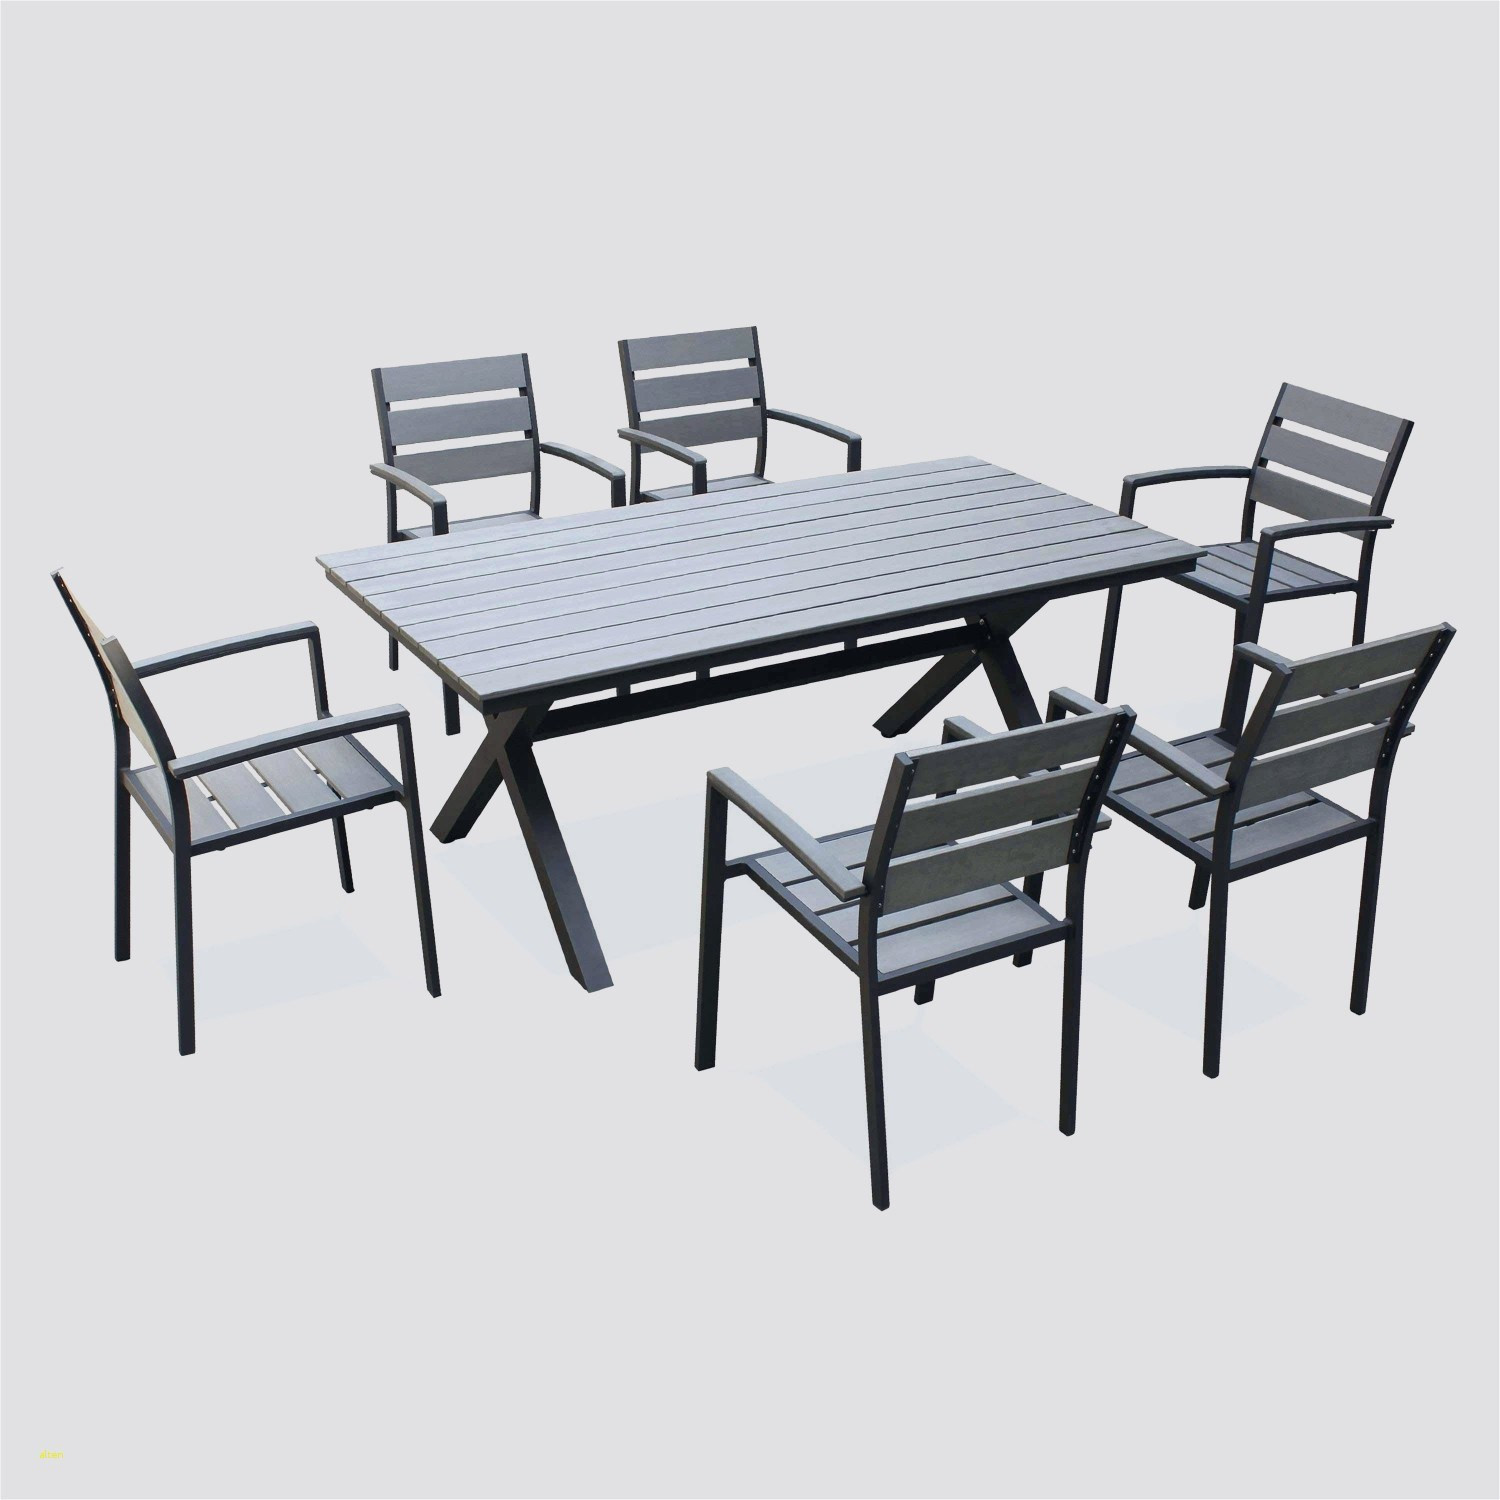 table et banc pliant carrefour table banc pliable of table et banc pliant carrefour